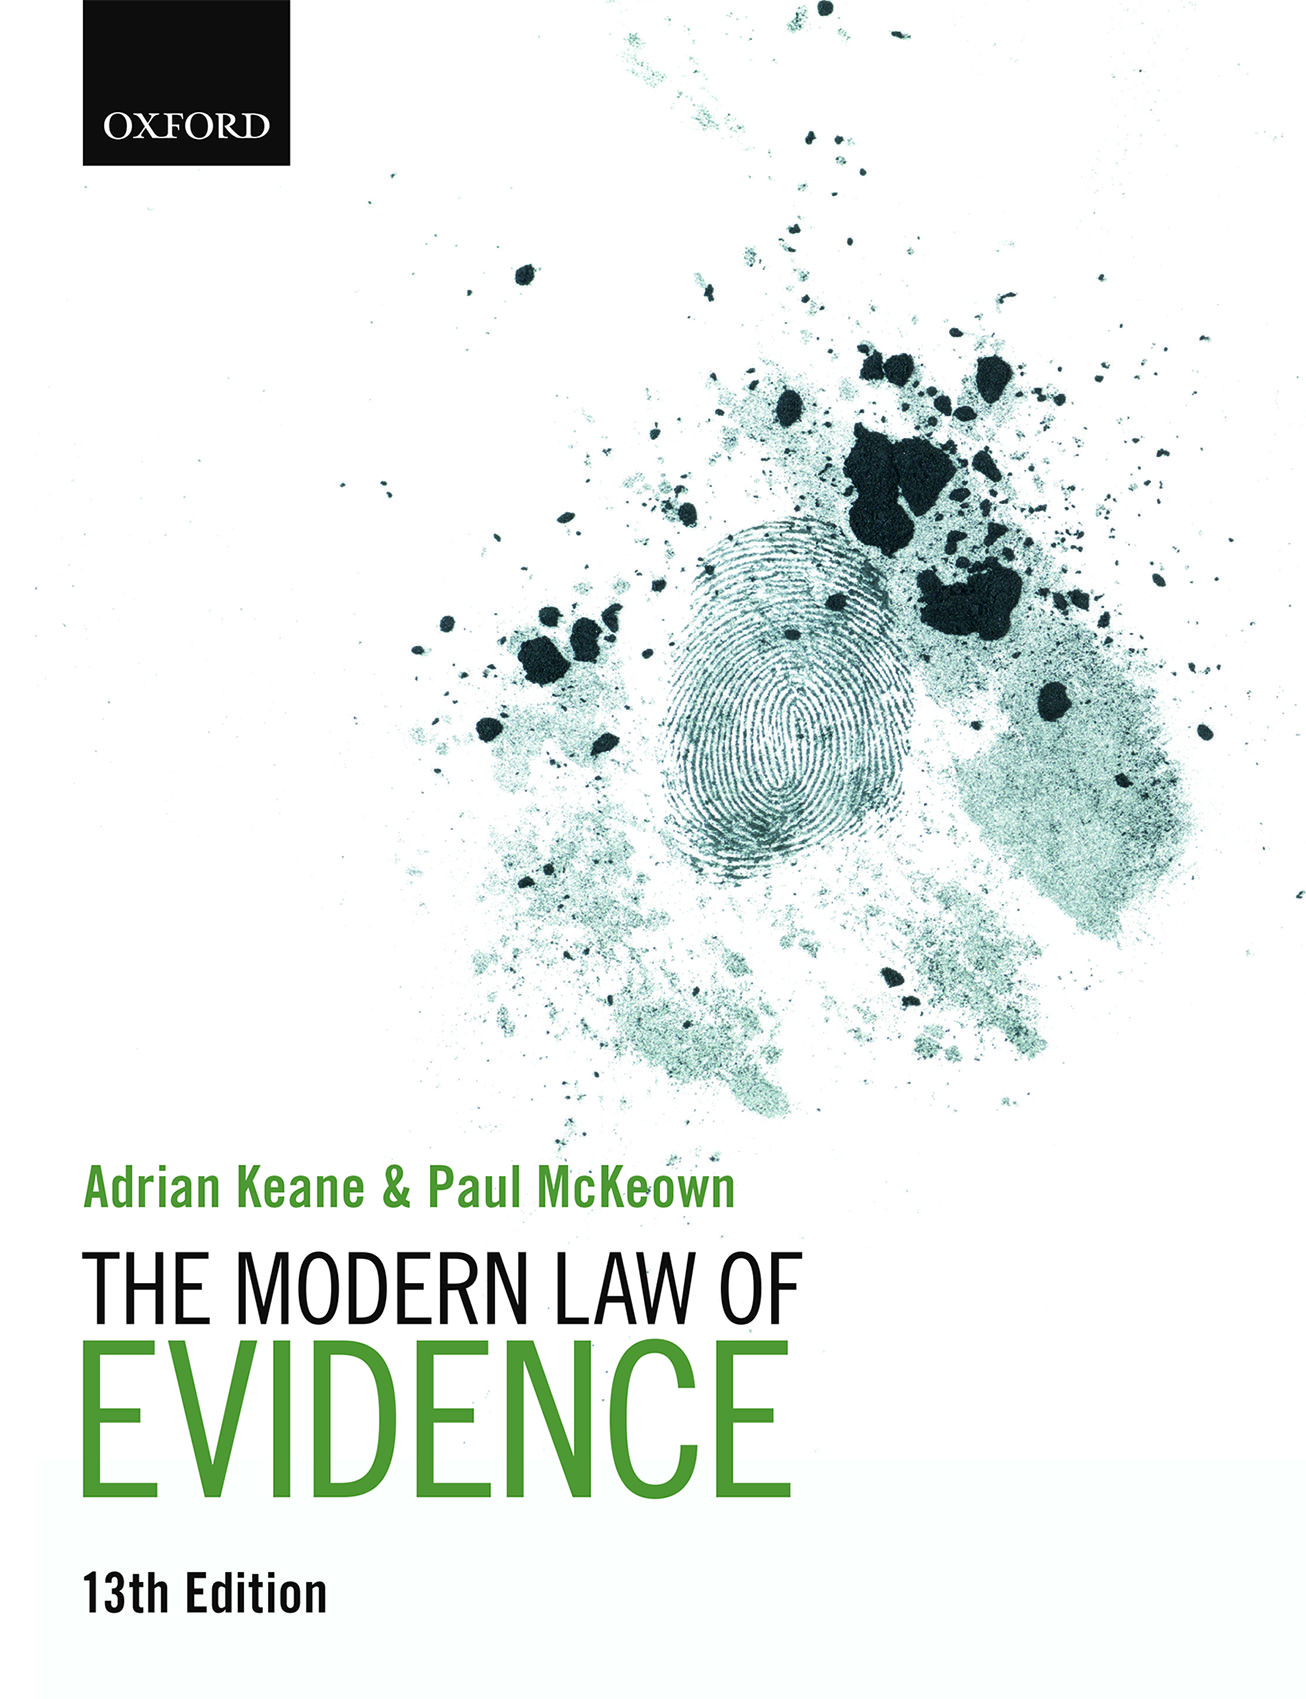 The Modern Law of Evidence 13e Student Resources